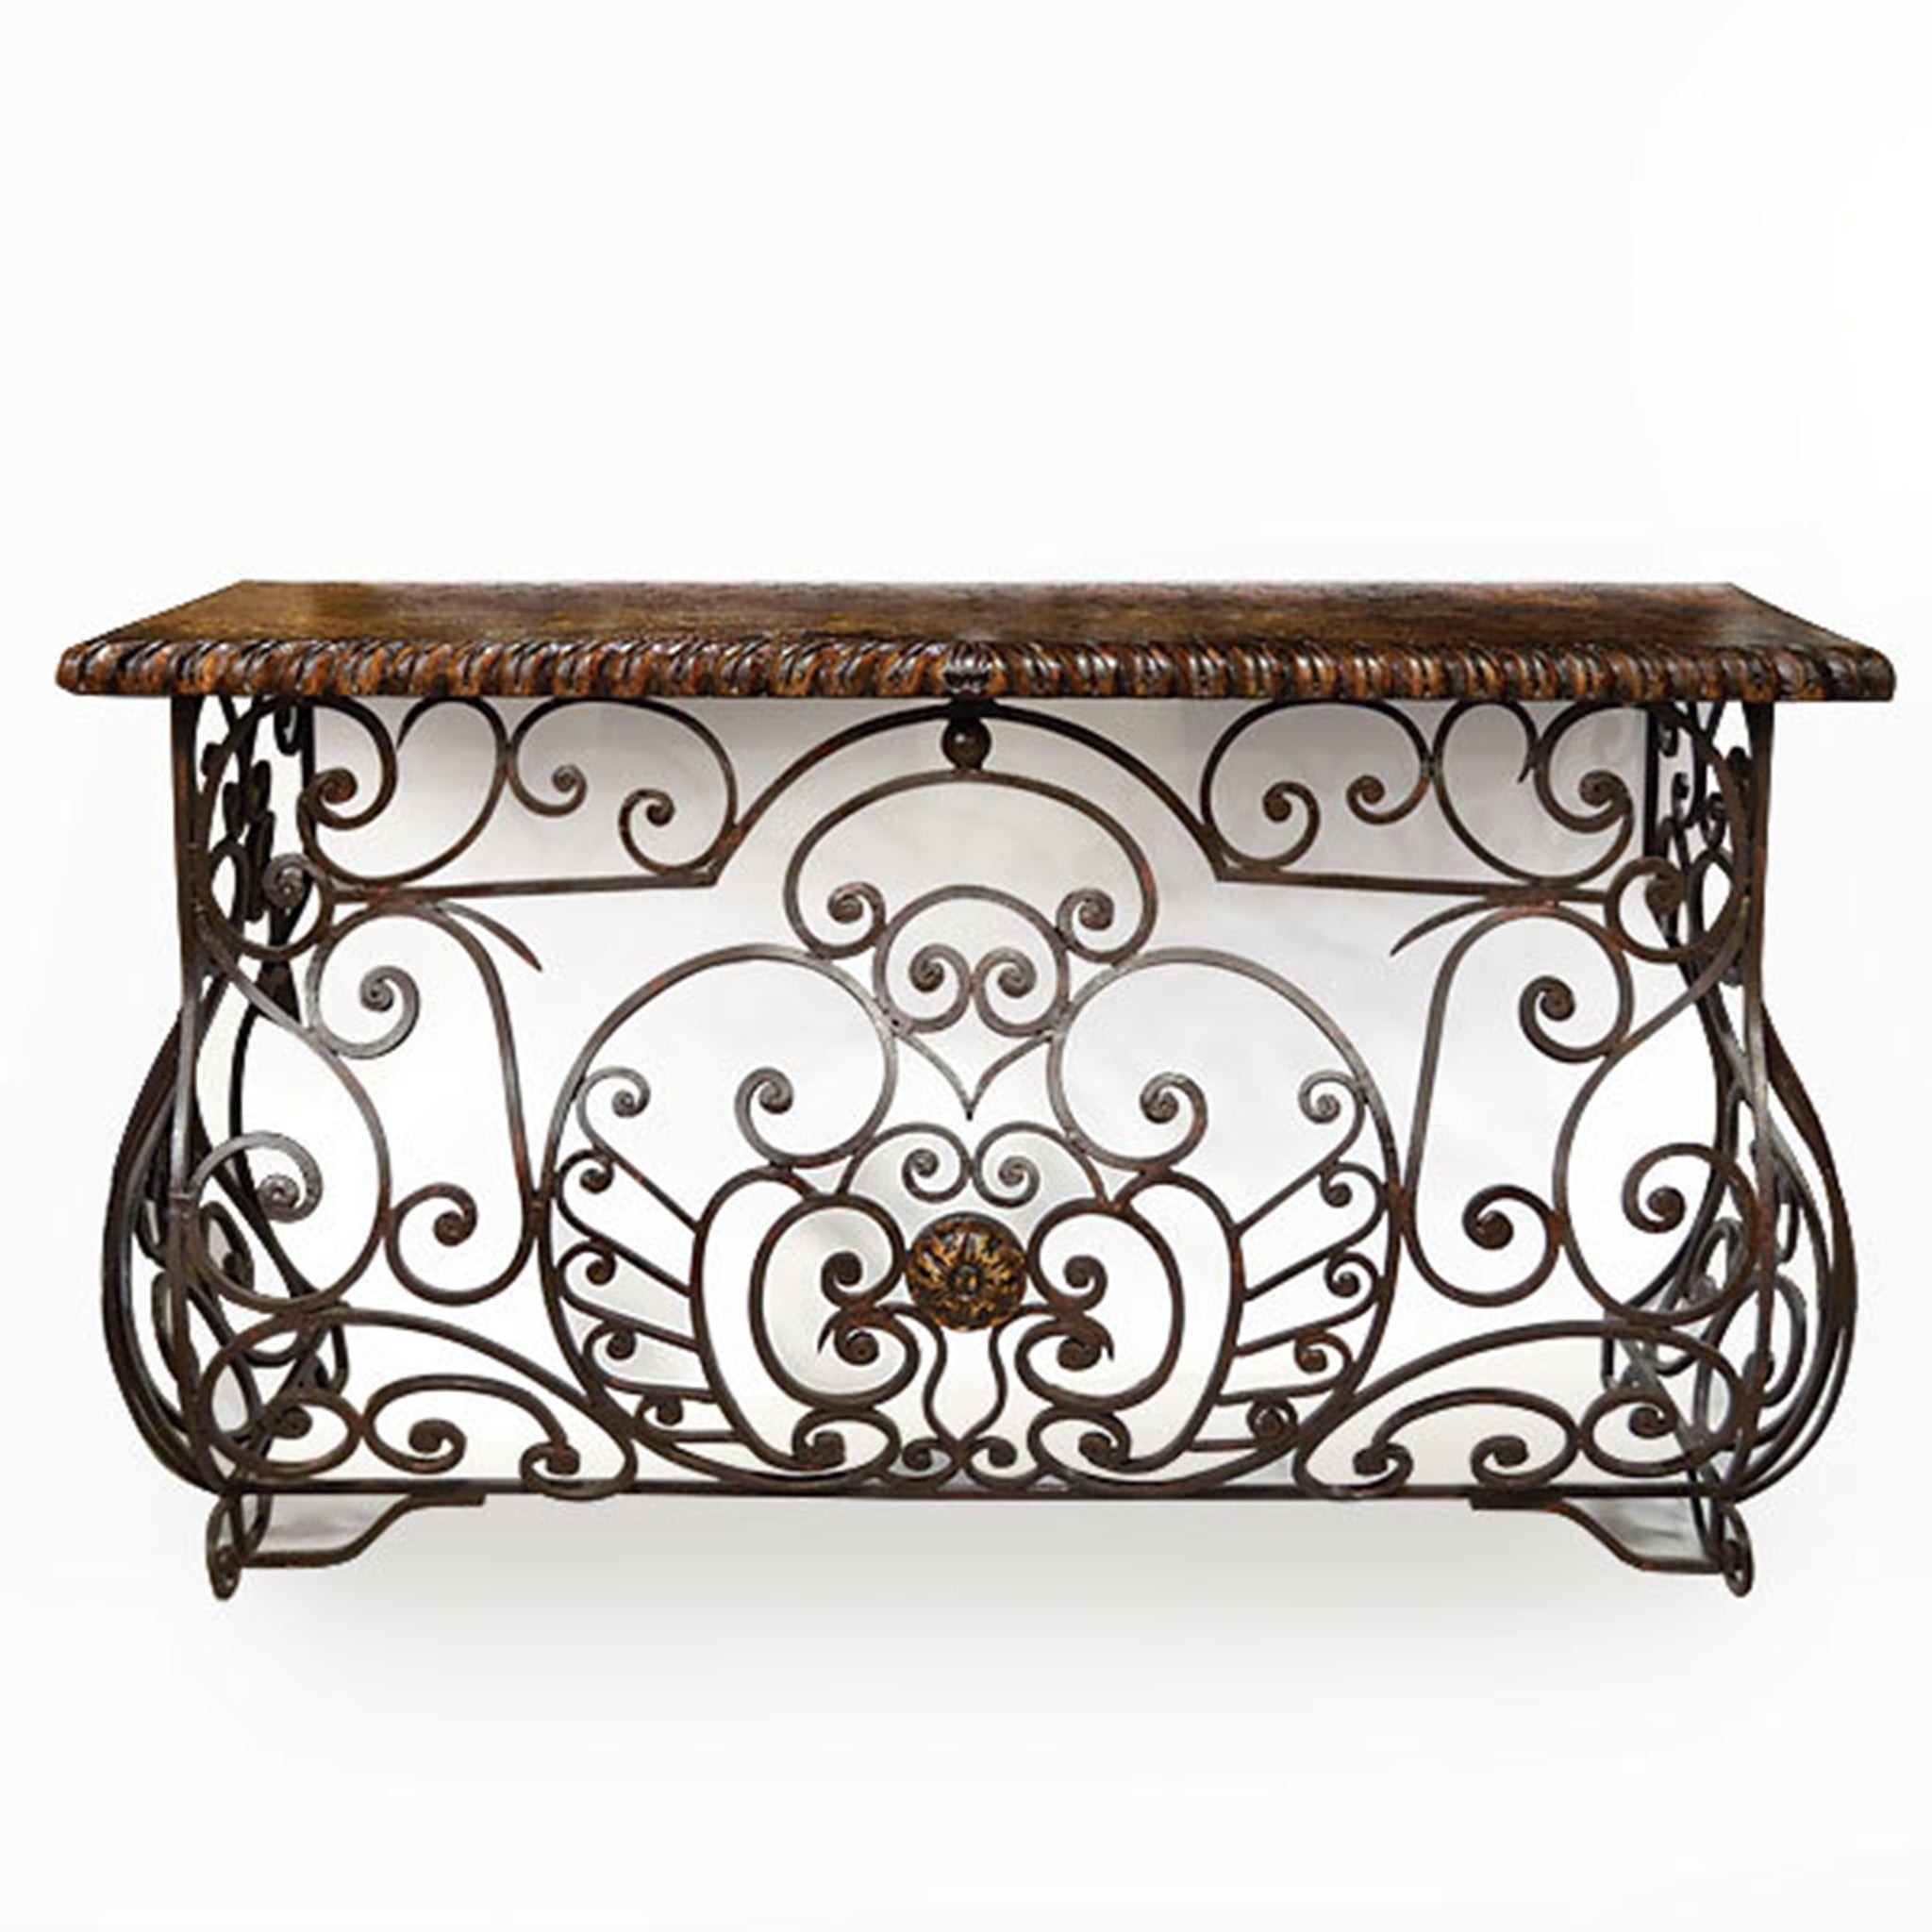 Forged Iron Console Table - Furniture on Main